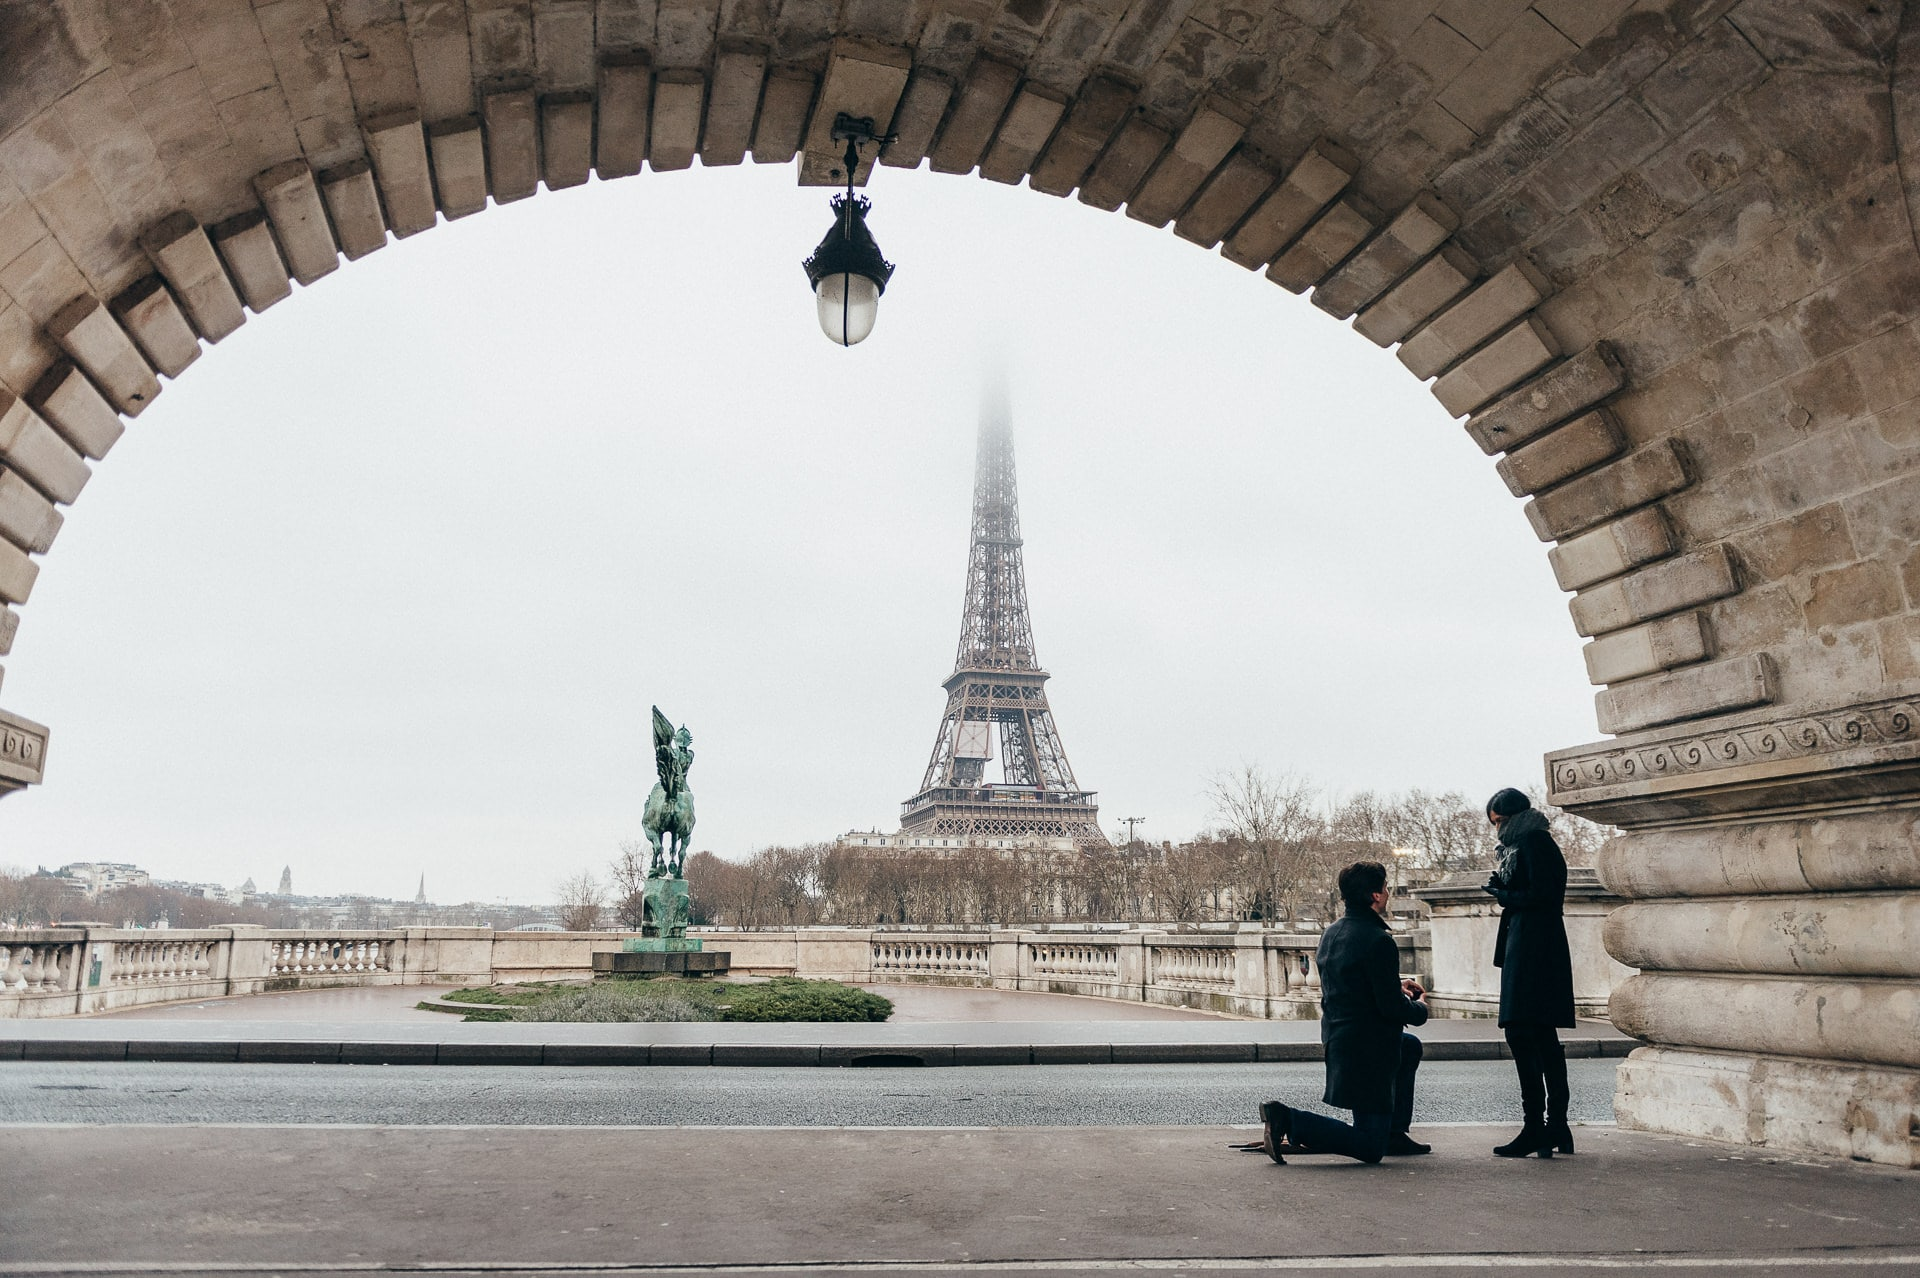 proposal in Paris - Wedding photographer France